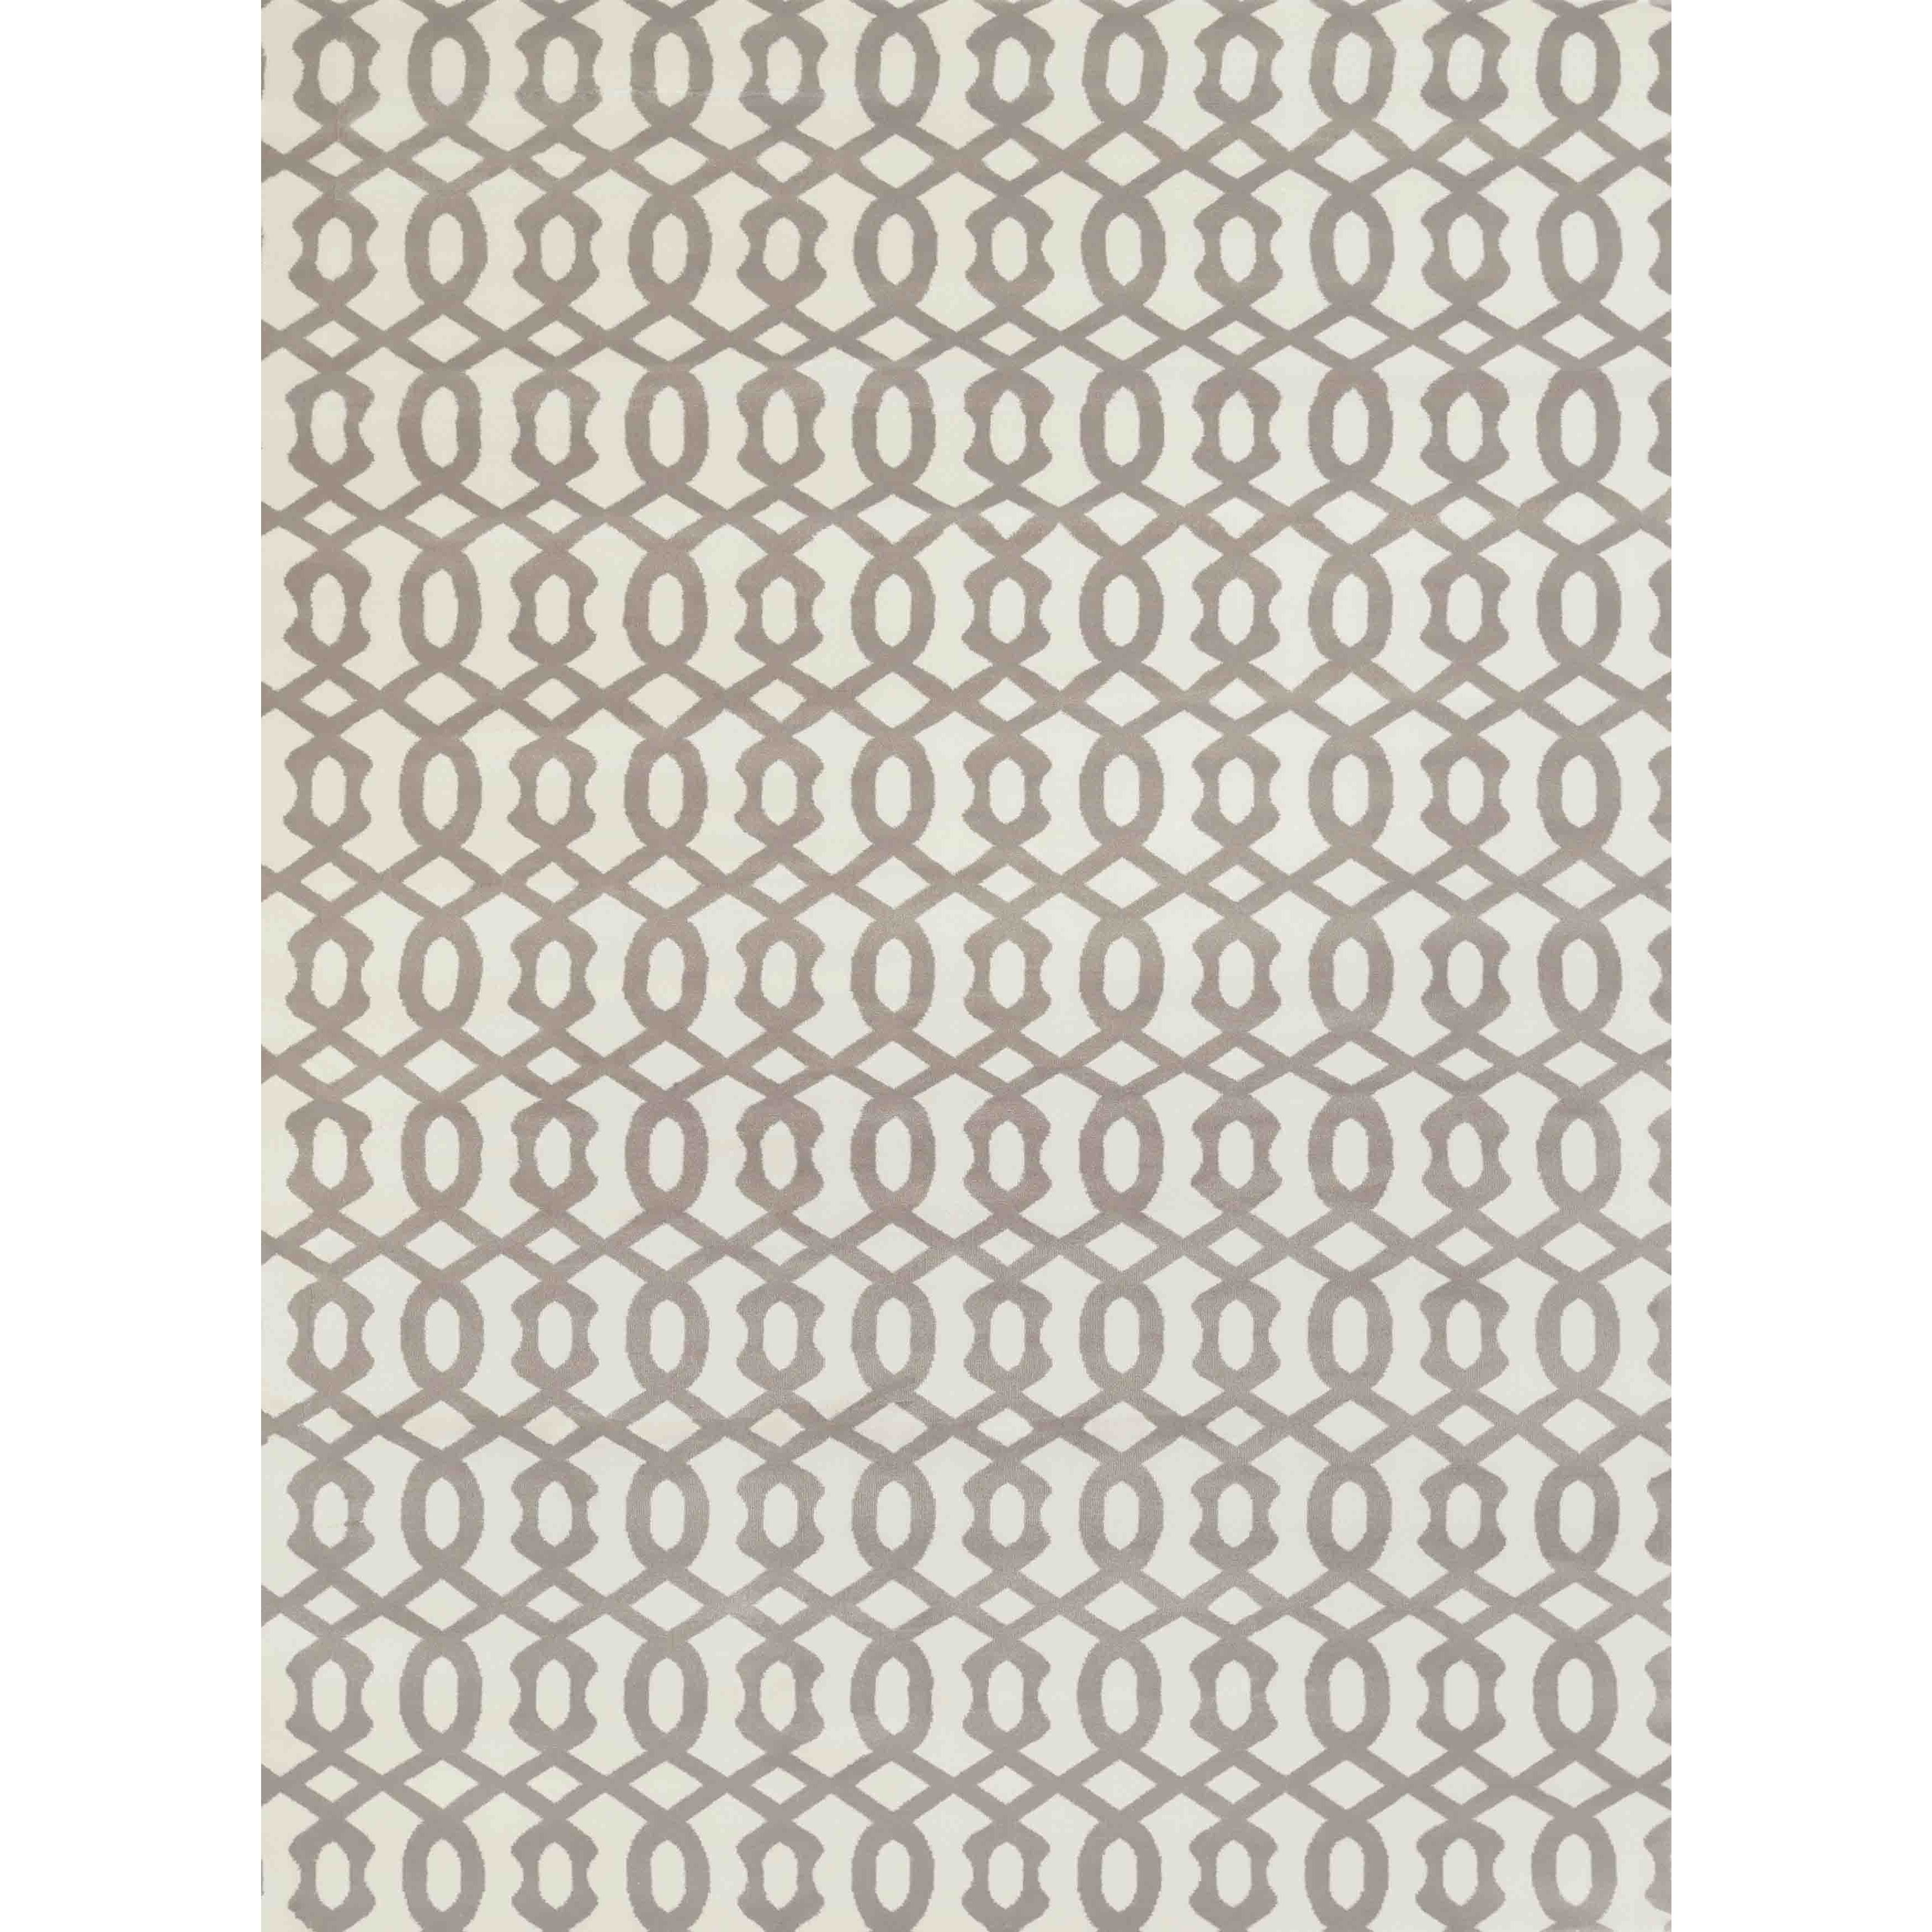 7 X 11 Area Rugs Free Shipping On Orders Over 45 Find The